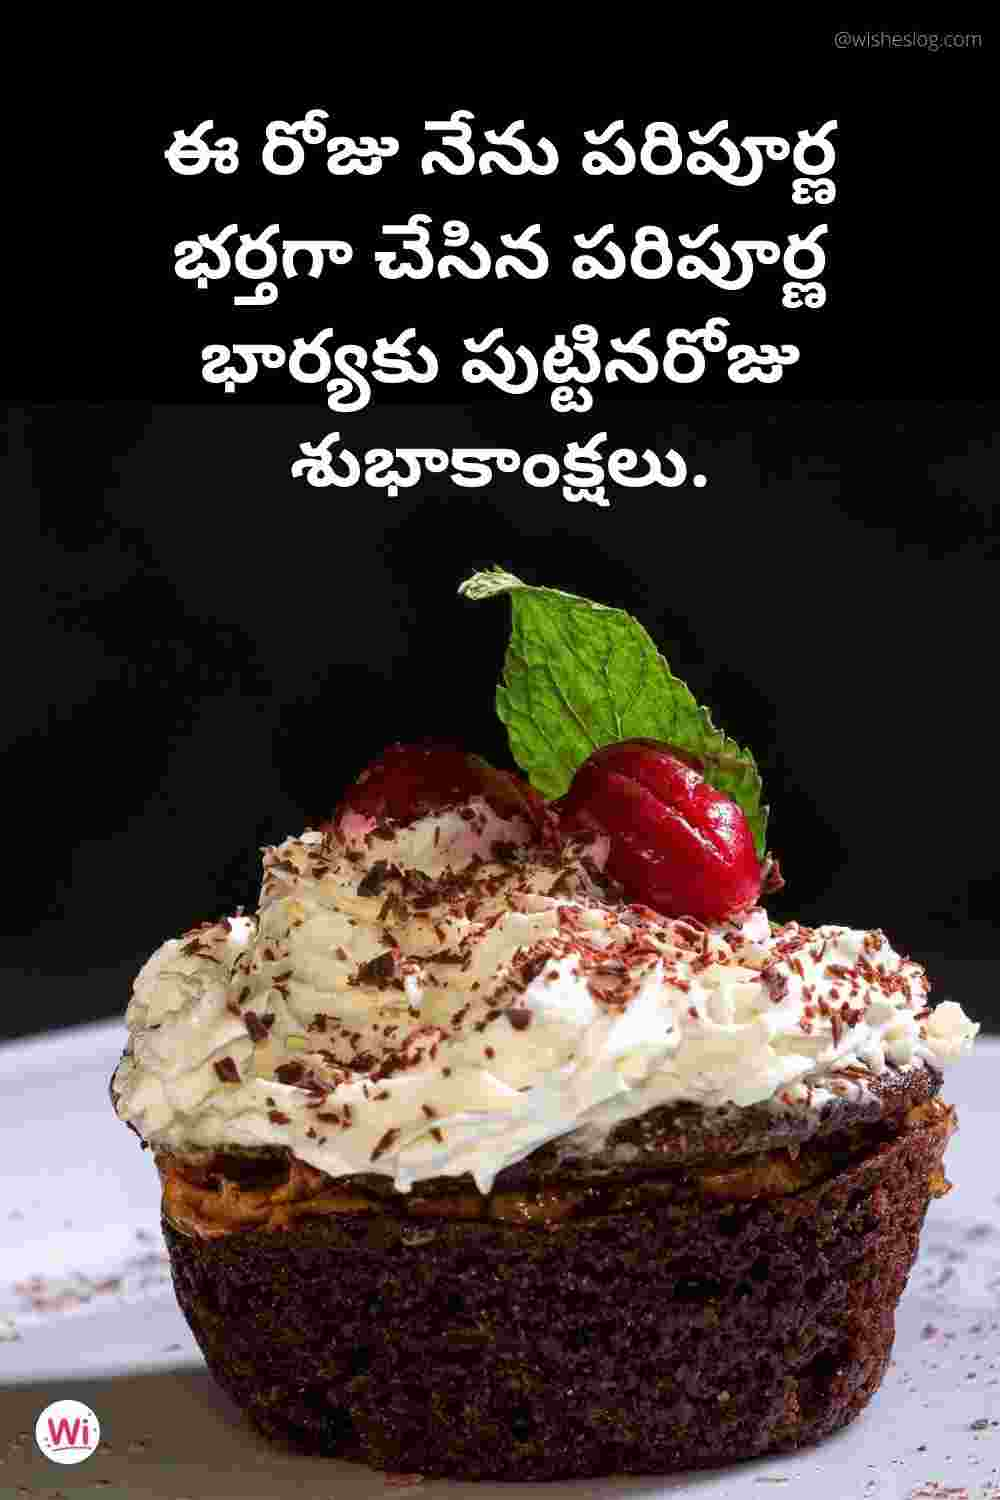 birthday wishes in telugu text for wife